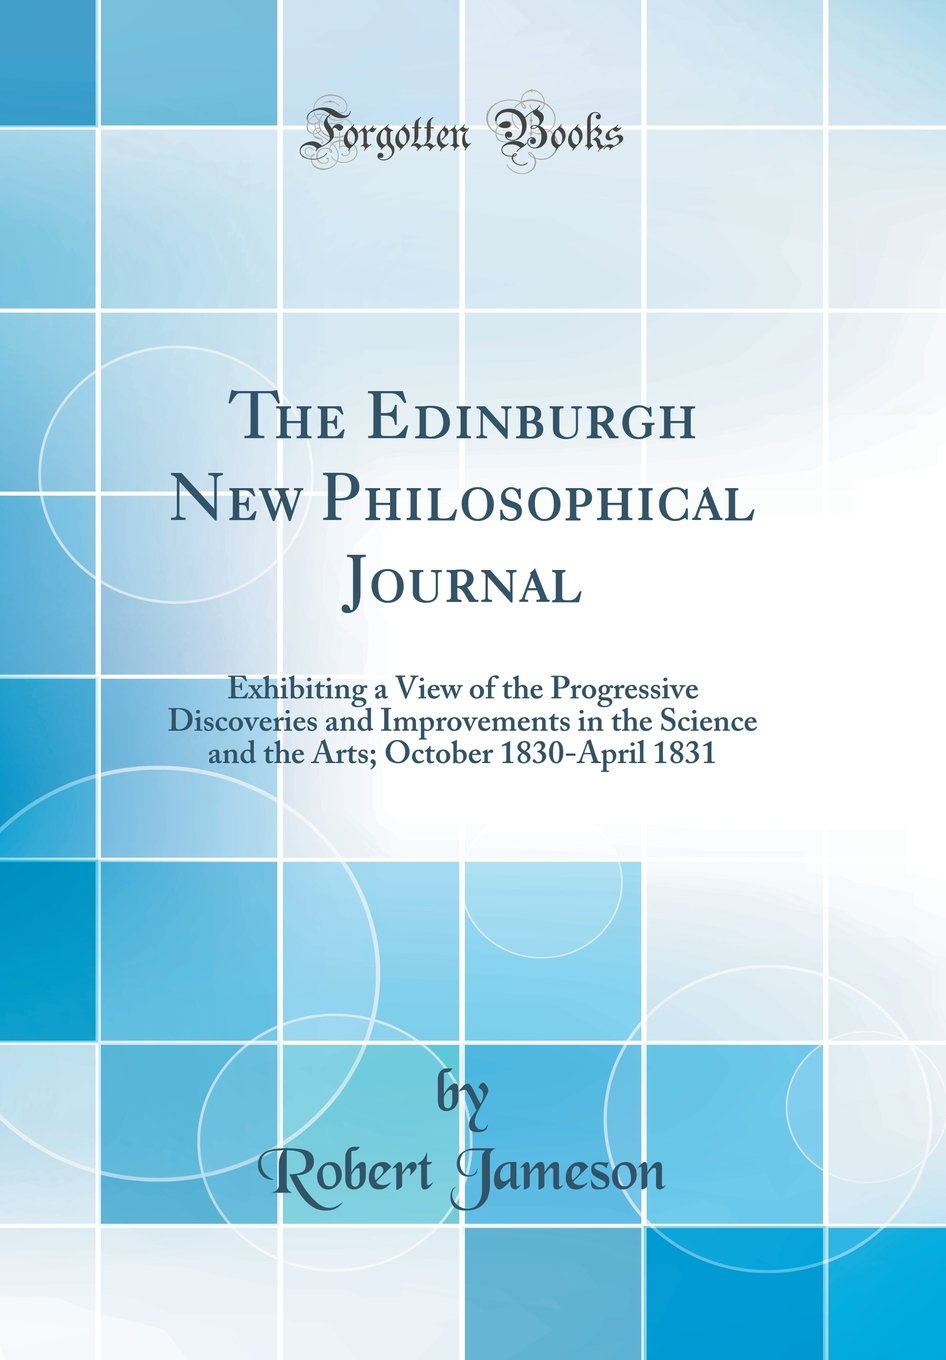 Download The Edinburgh New Philosophical Journal: Exhibiting a View of the Progressive Discoveries and Improvements in the Science and the Arts; October 1830-April 1831 (Classic Reprint) ebook